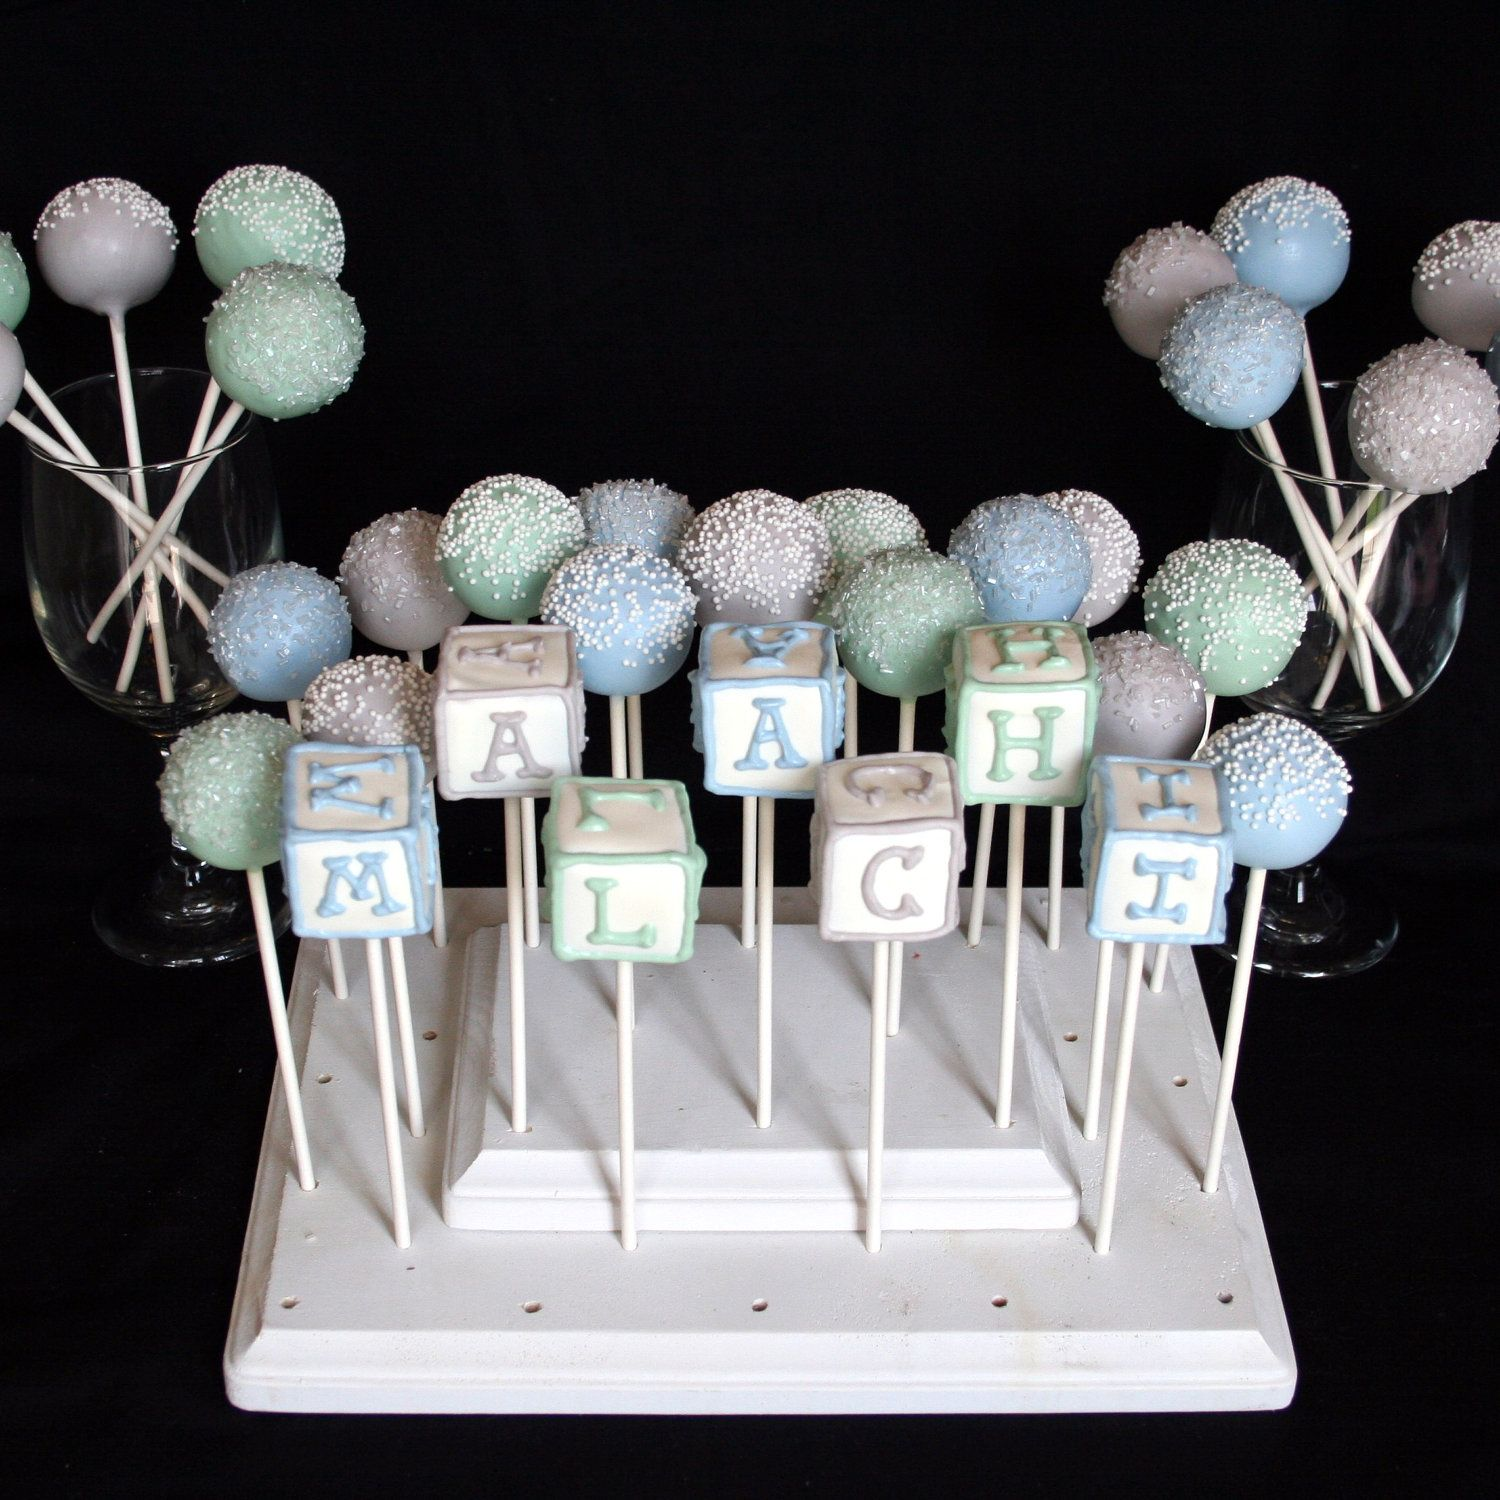 Cake Pop Centerpieces For Baby Shower : 12 Baby Block Cake Pops - personalized name, monogram ...